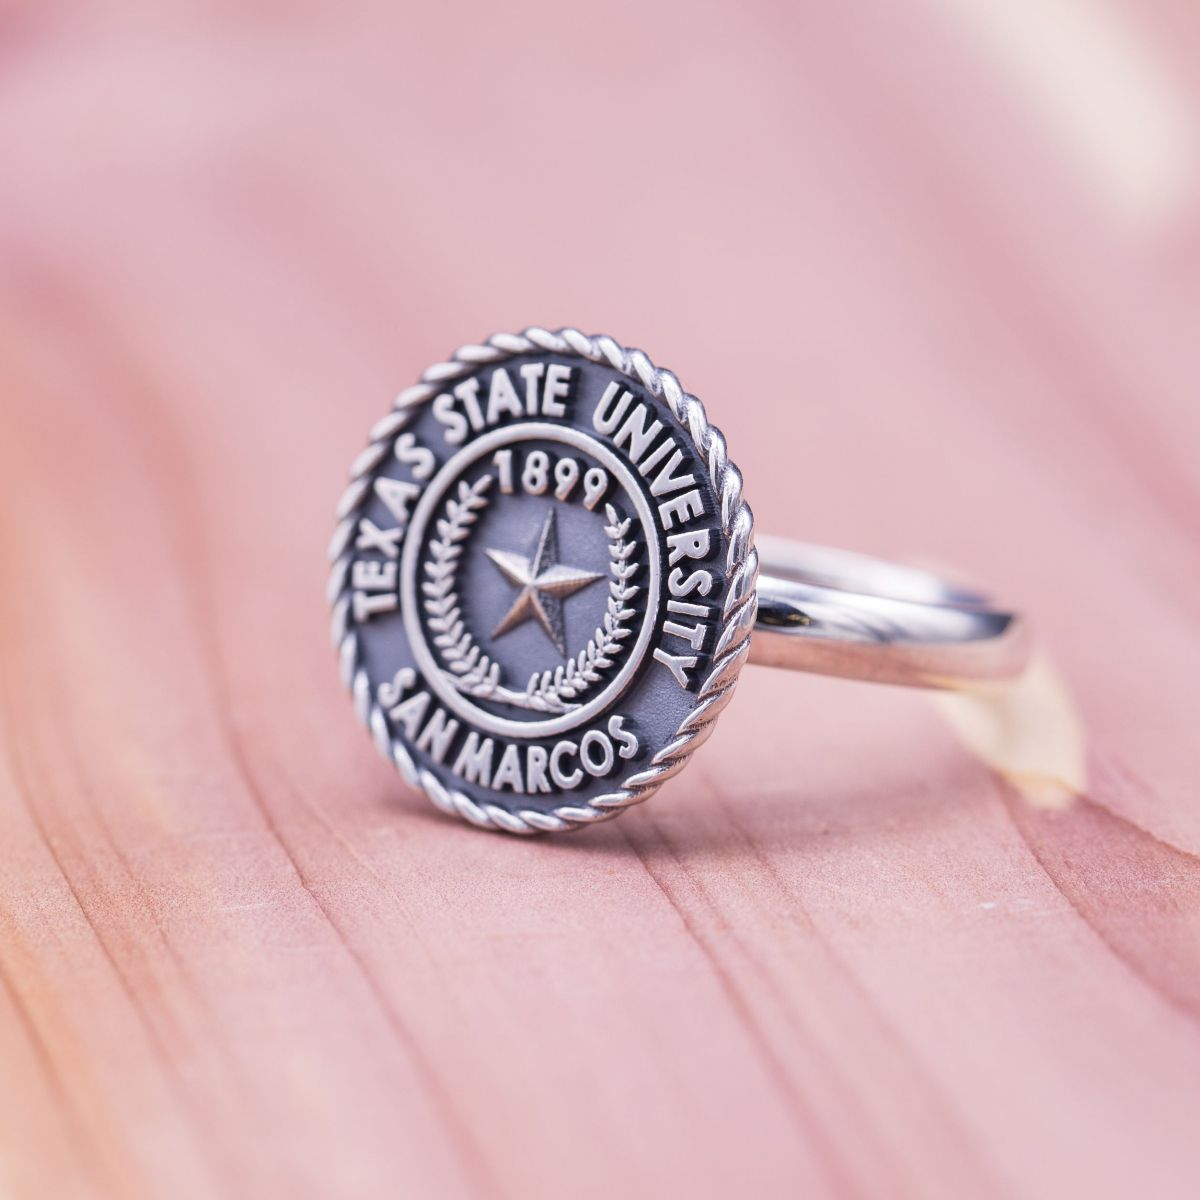 custom class rings design your own college class ring. Black Bedroom Furniture Sets. Home Design Ideas